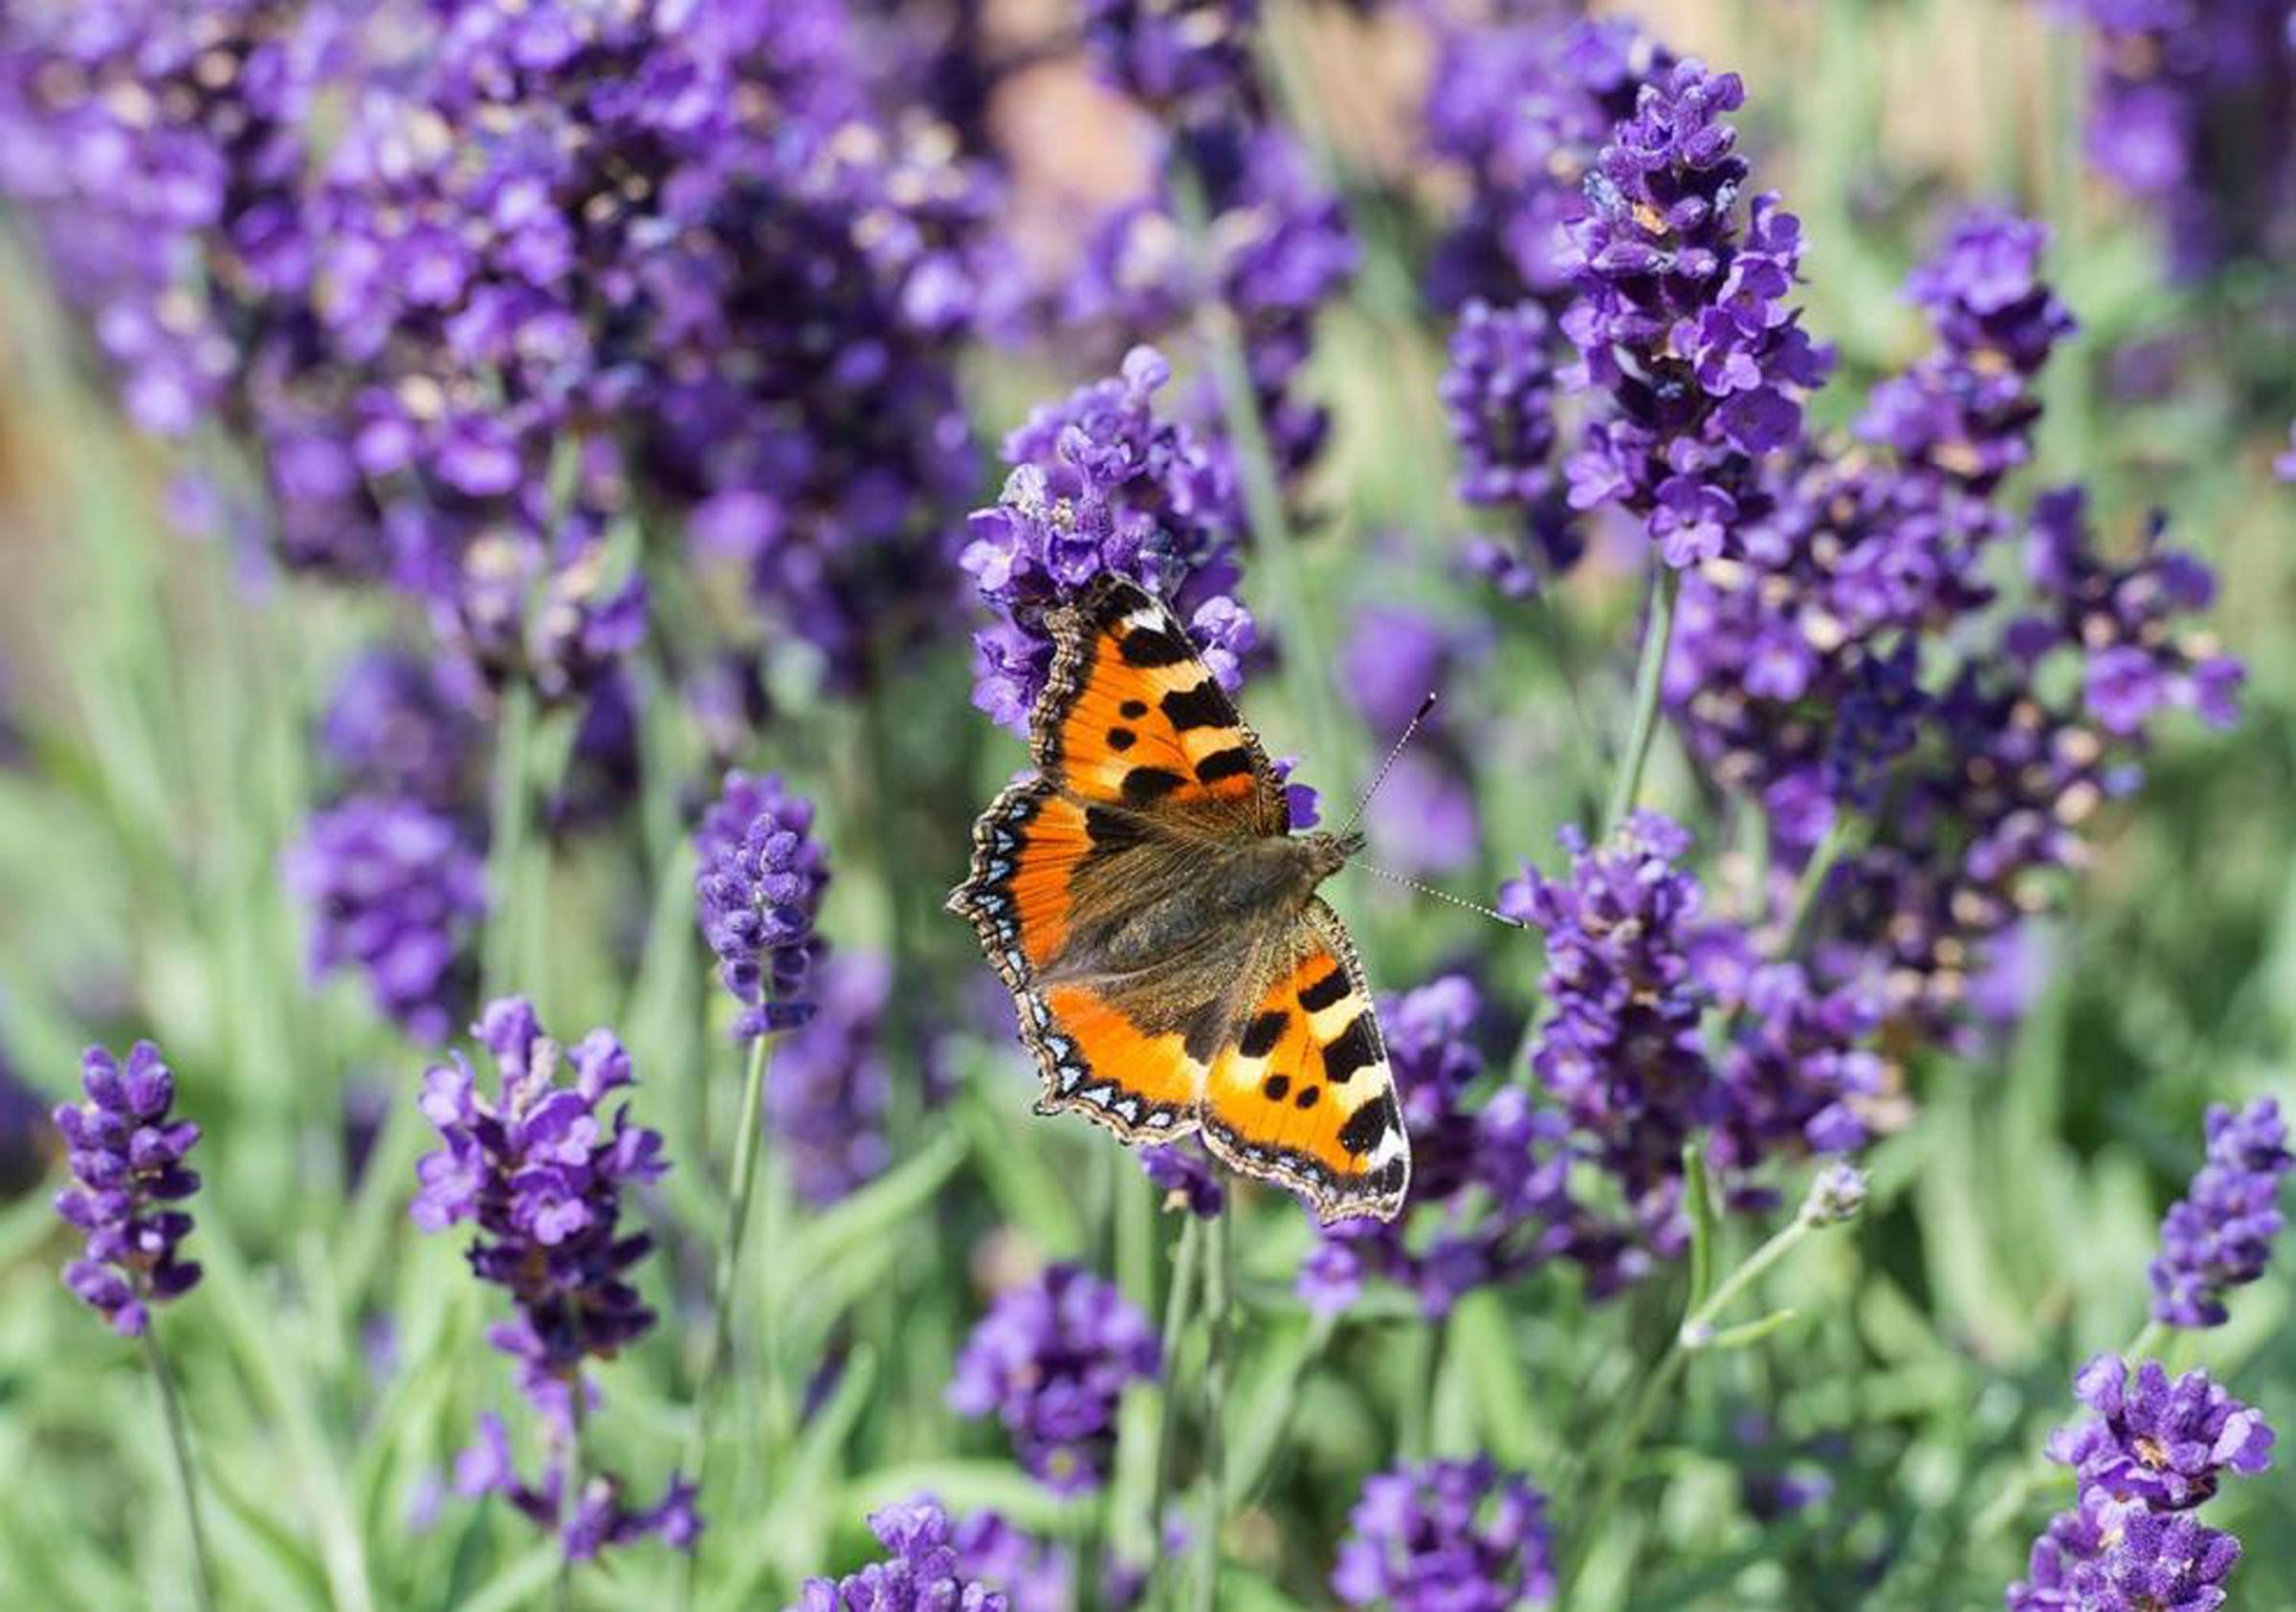 Lavender was used in medieval times to scent linen, keep moths from woollens, relieve the symptoms of colds and aid insomnia, all ways in which we still use lavender today